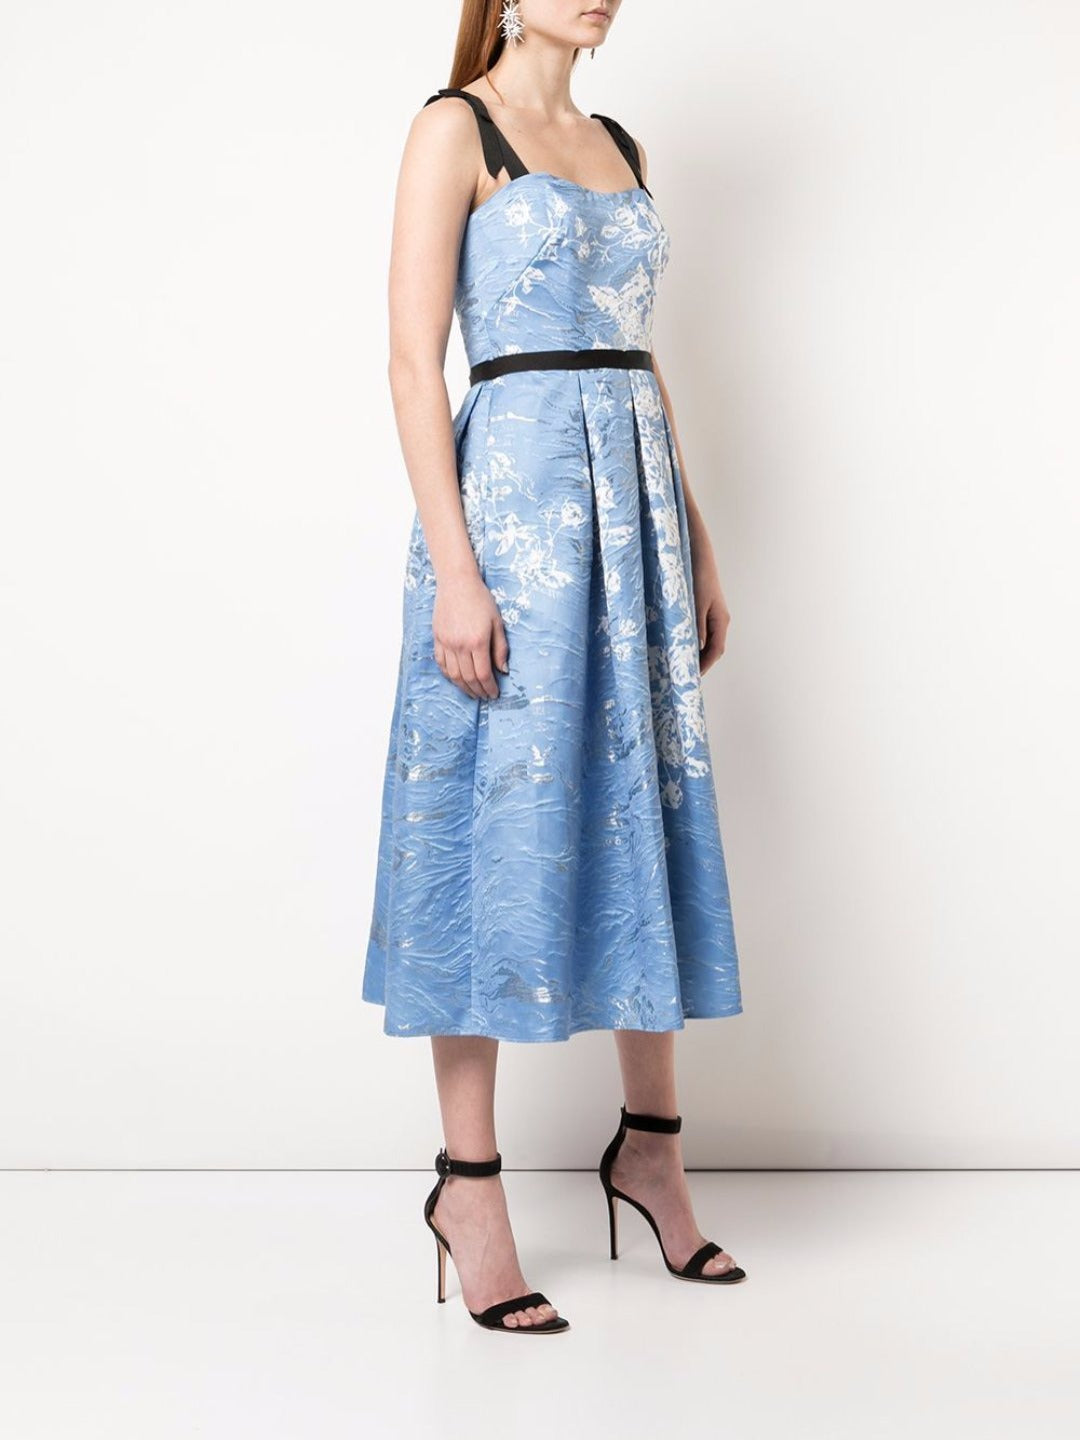 Floral Print Jacquard Tea-Length Dress